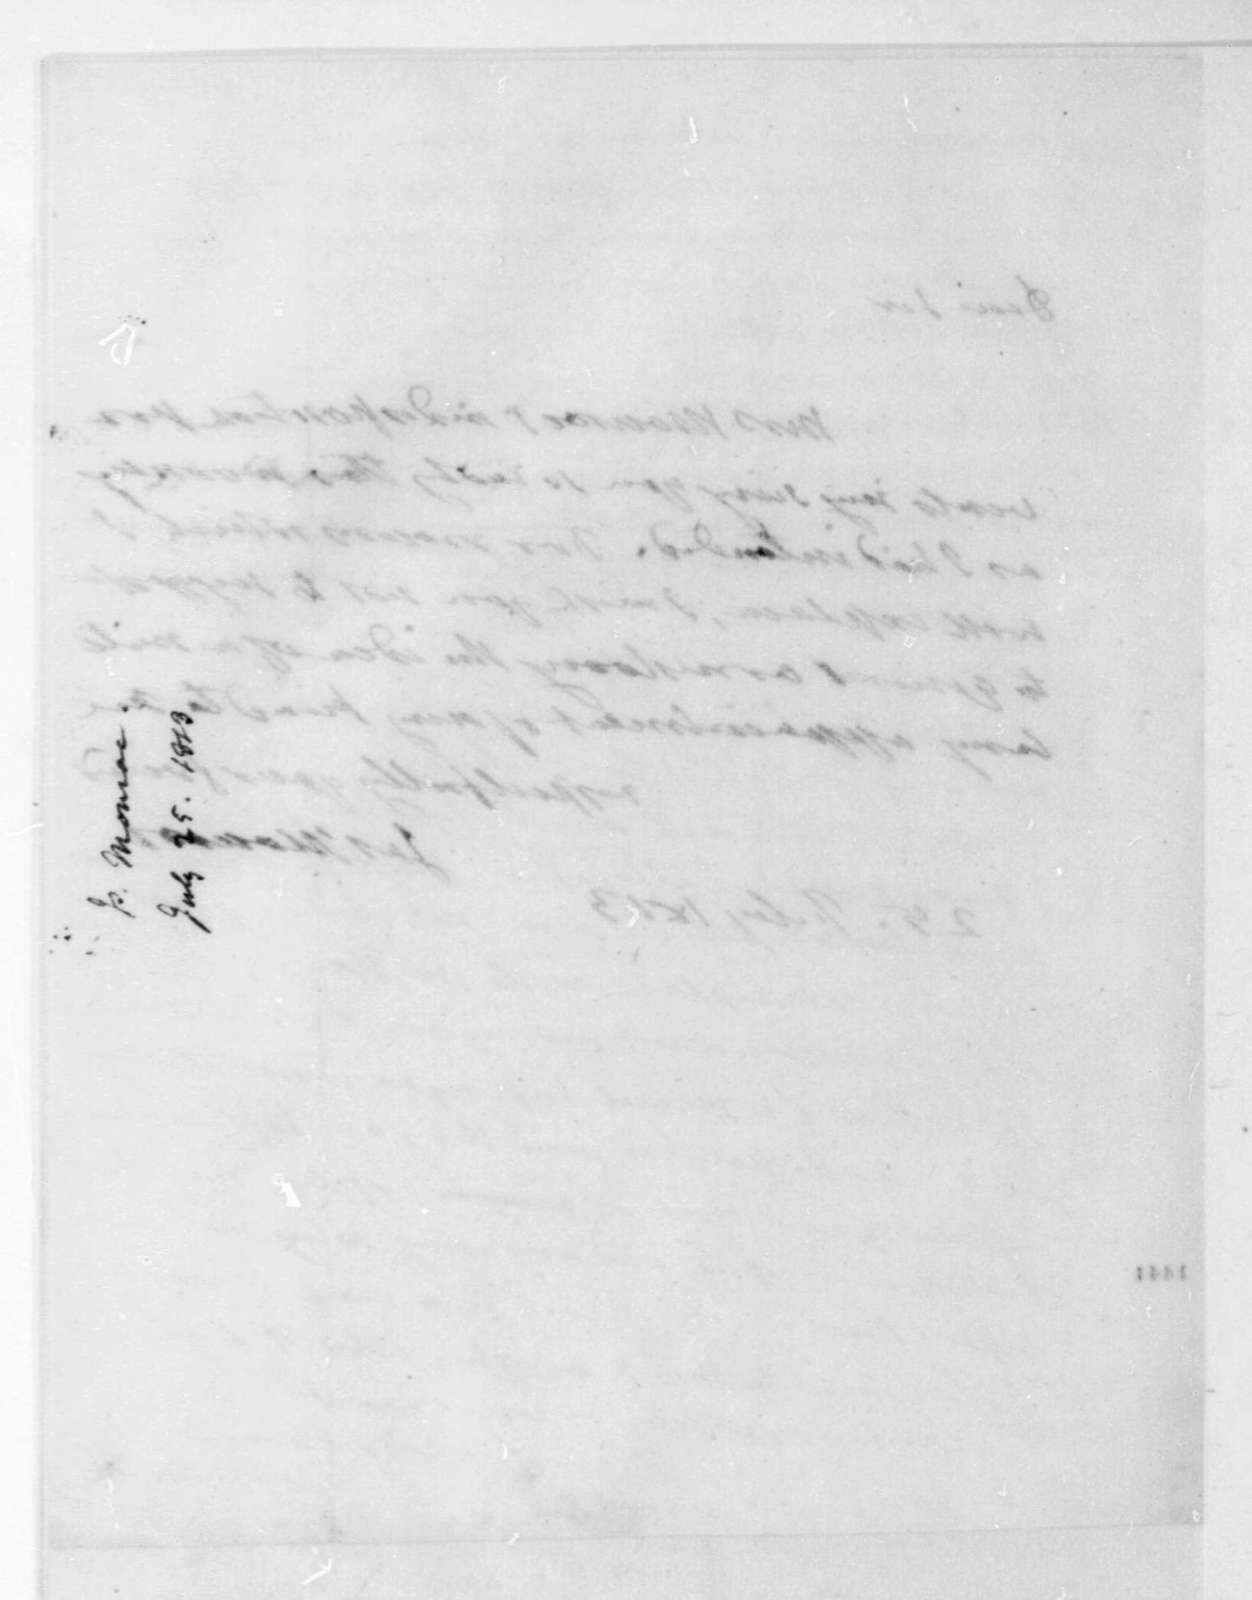 James Monroe to James Madison, March 25, 1813.